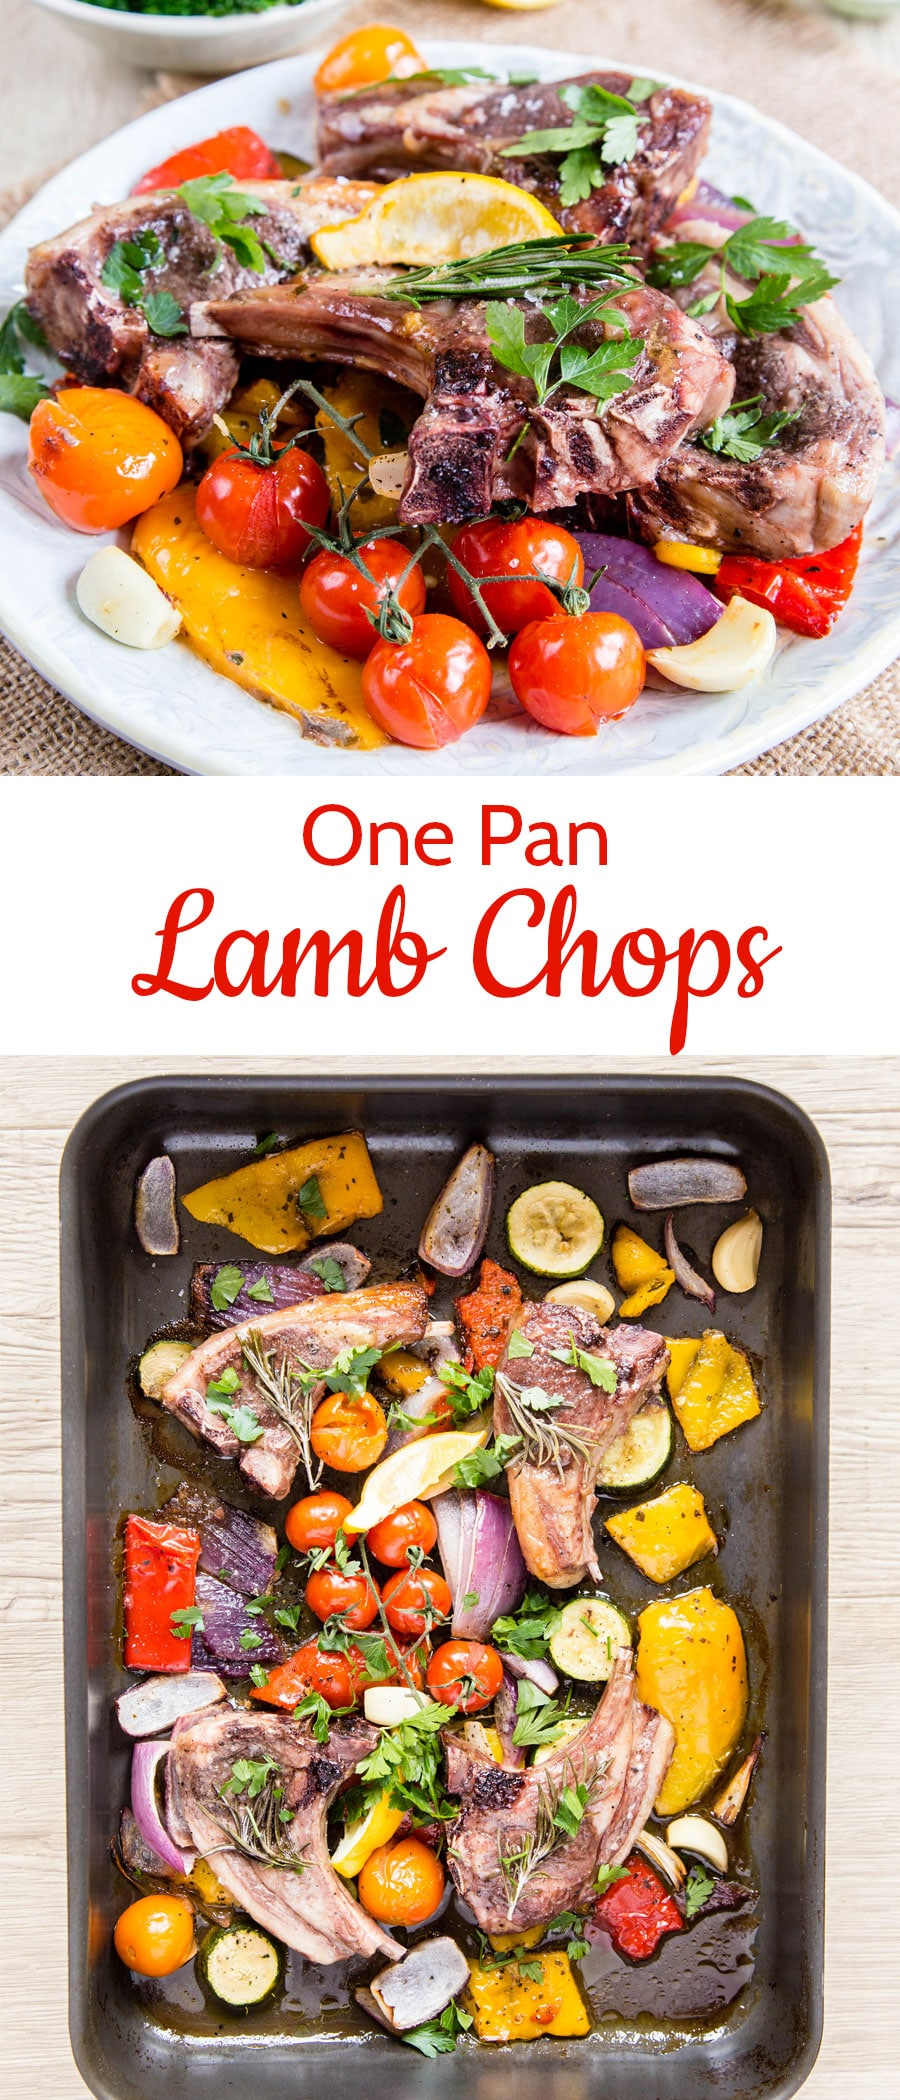 A lamb chop set on a white plate with roasted tomatoes and an overhead photo of lamb chops and veggies on a sheet pan with a text overlay